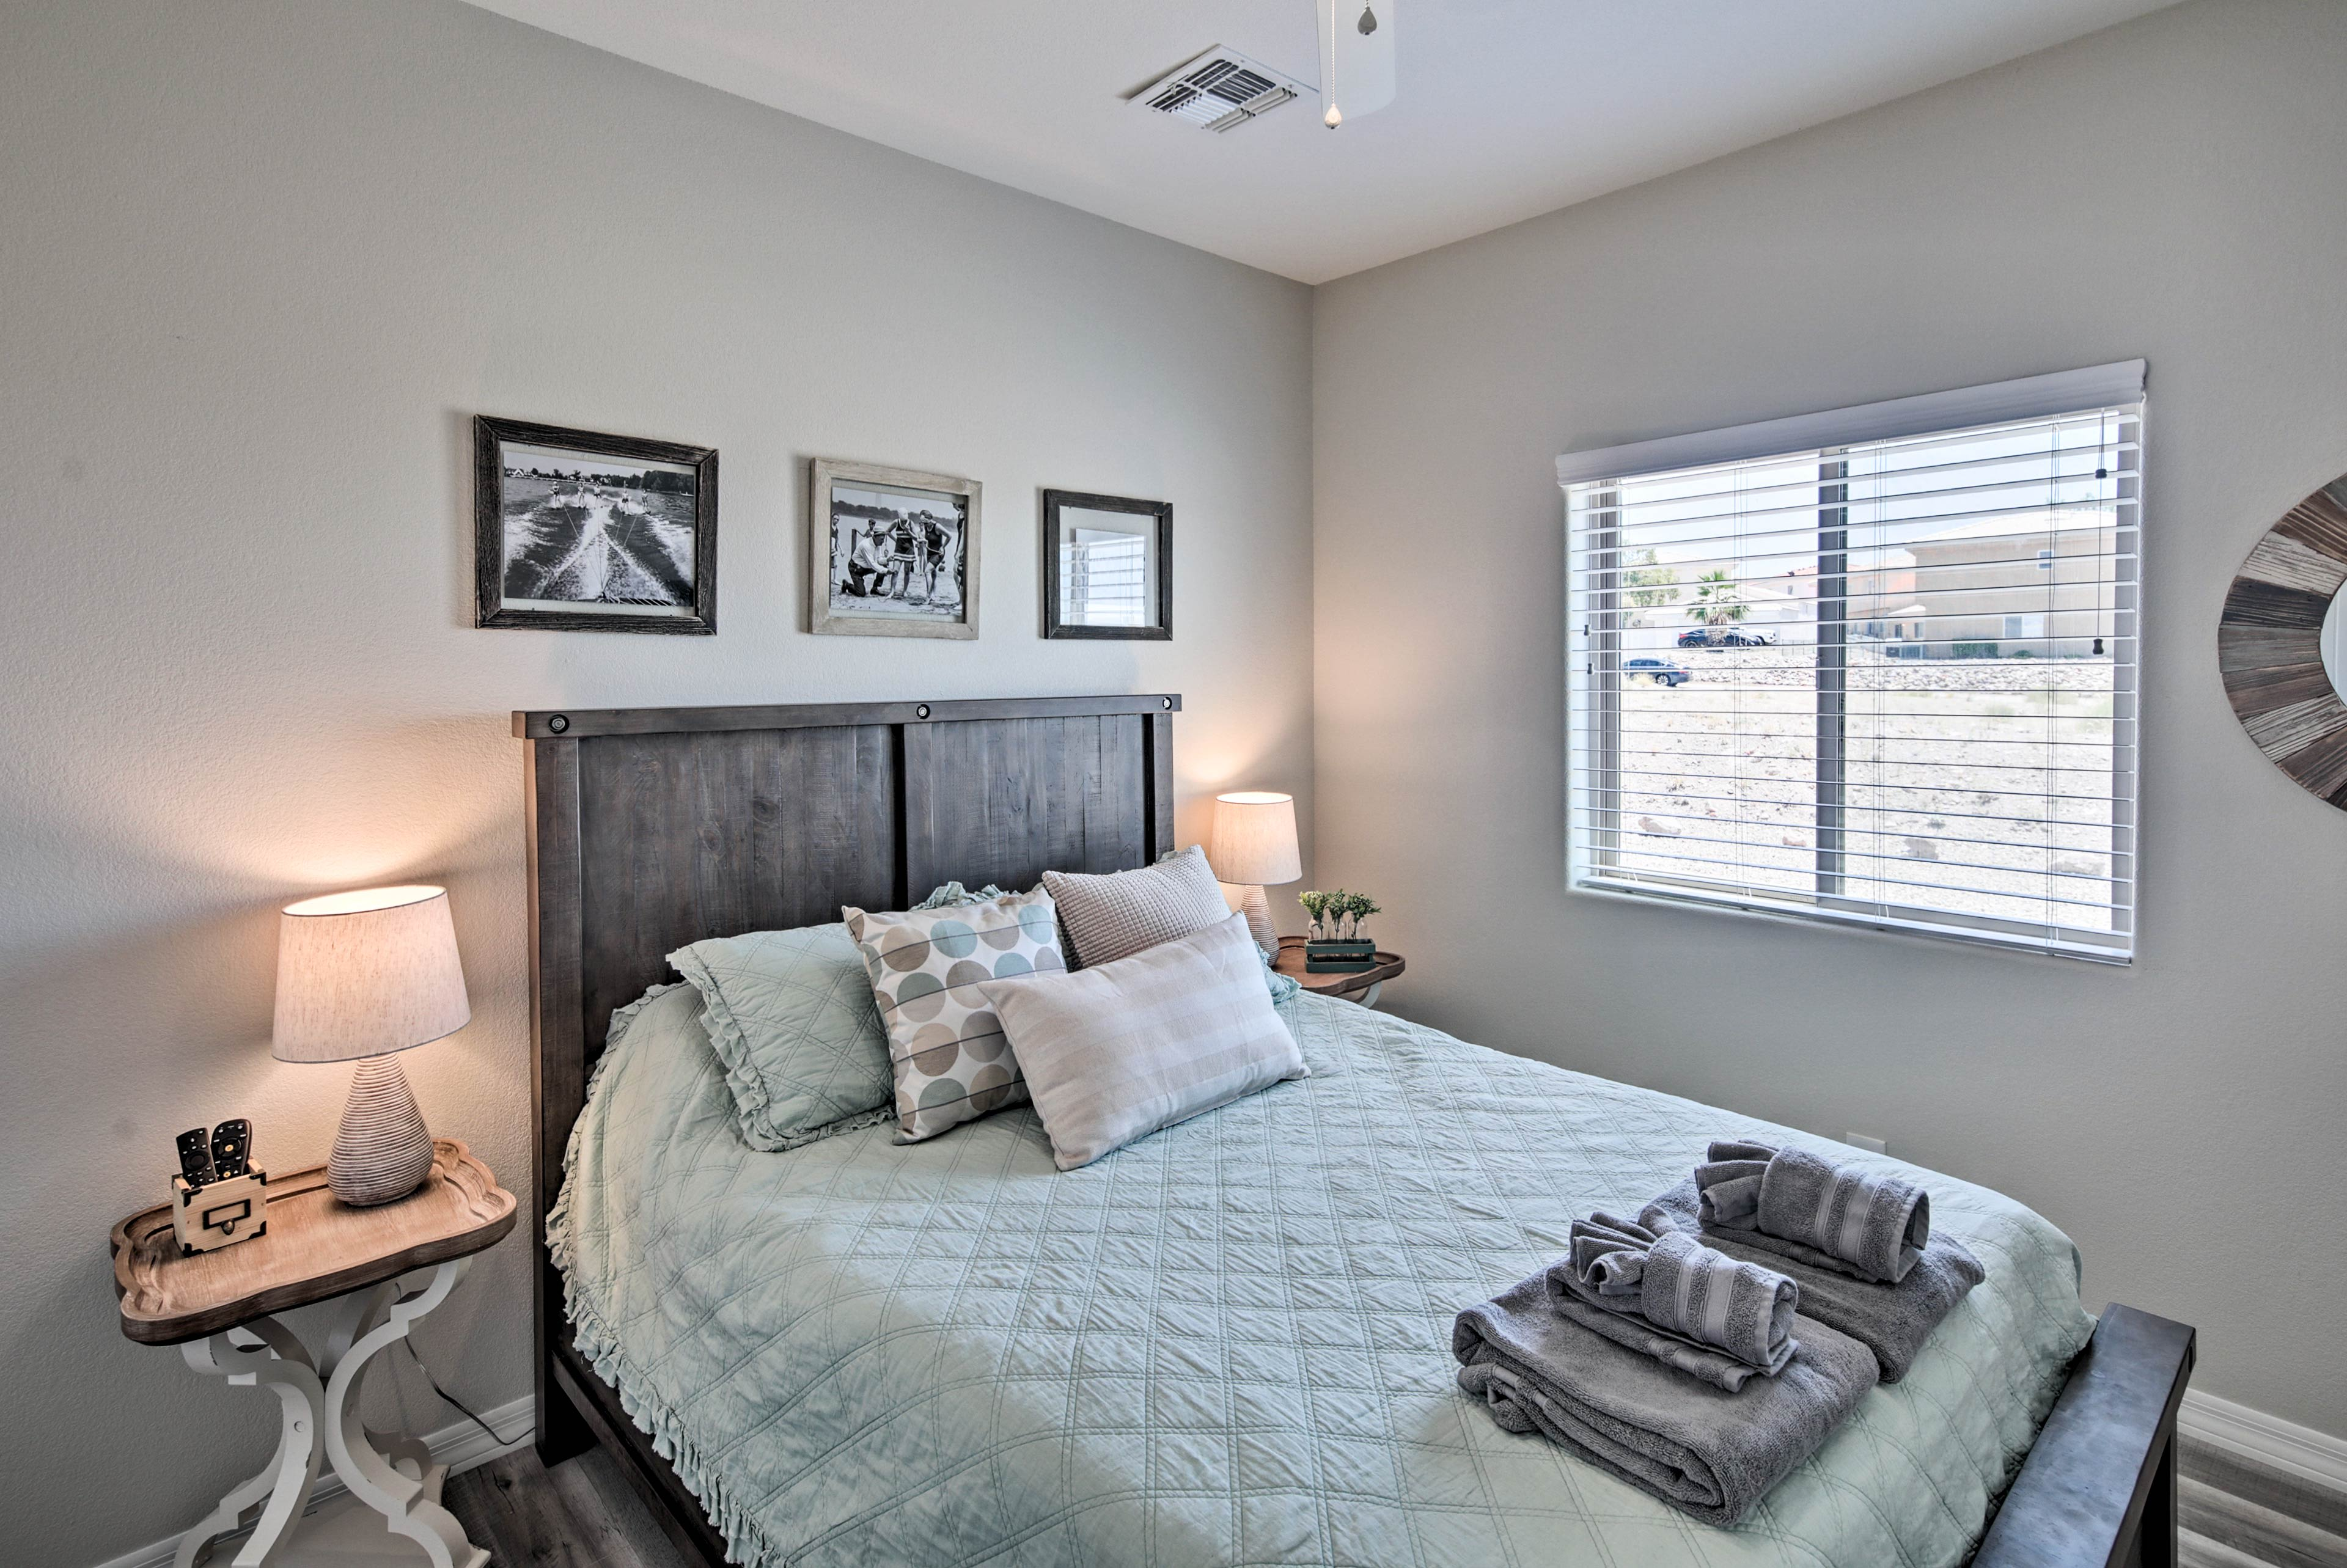 The second bedroom features a queen-sized bed.